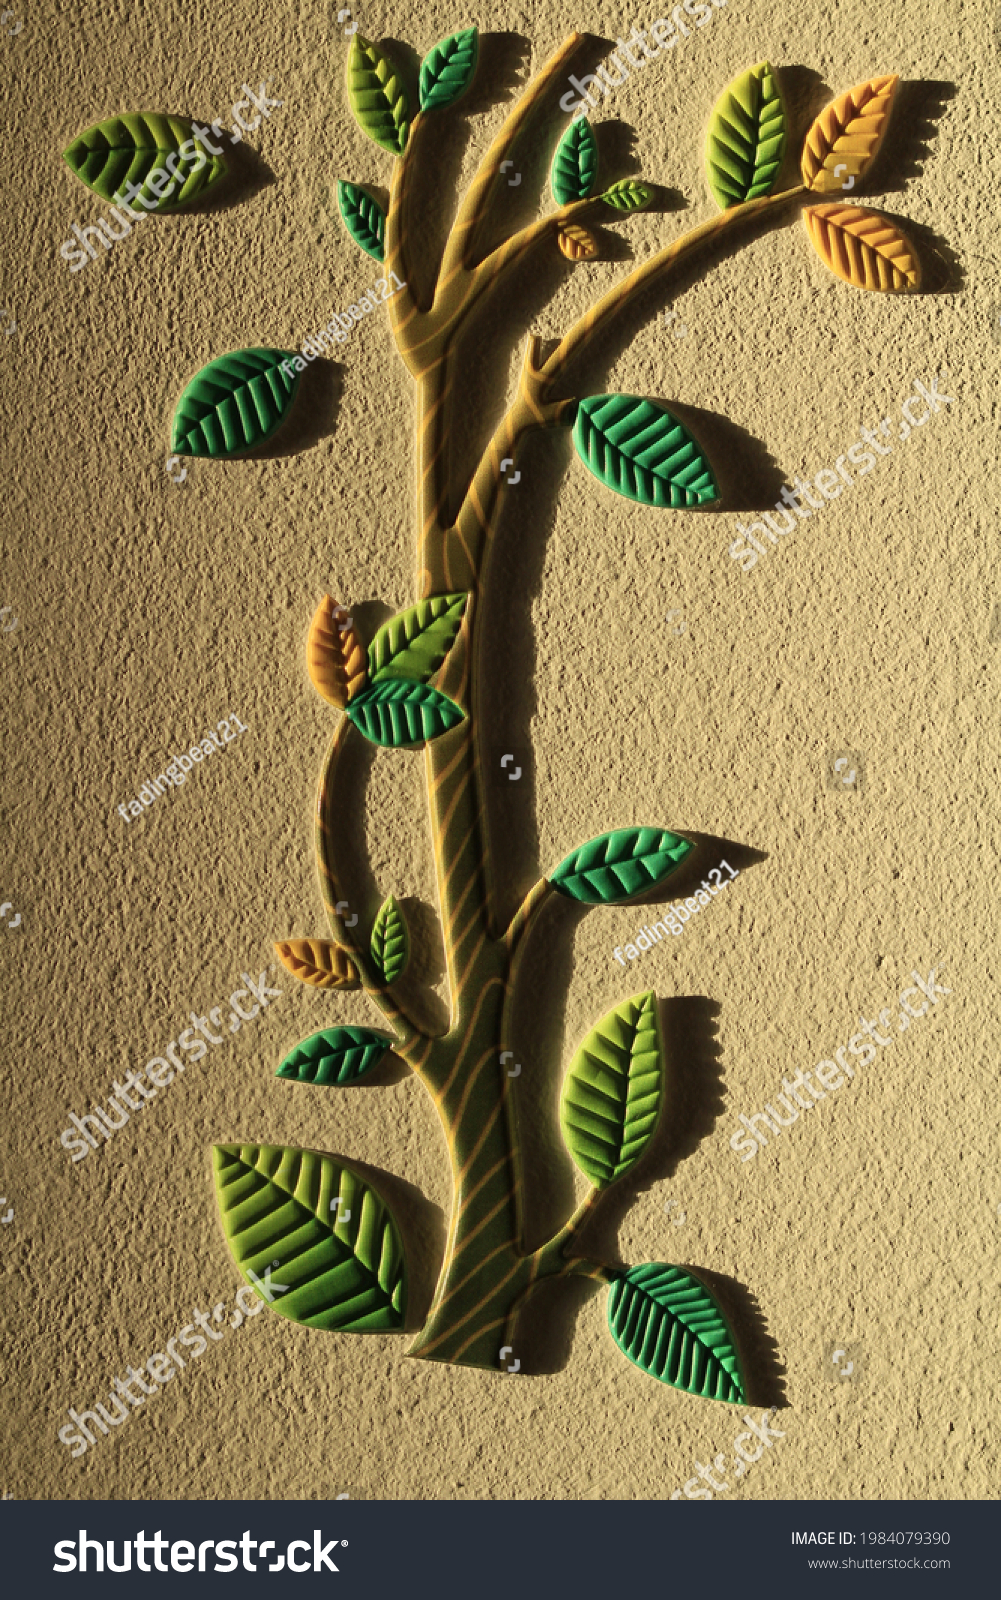 Tree with branches and leaves sticker glued to the wall.